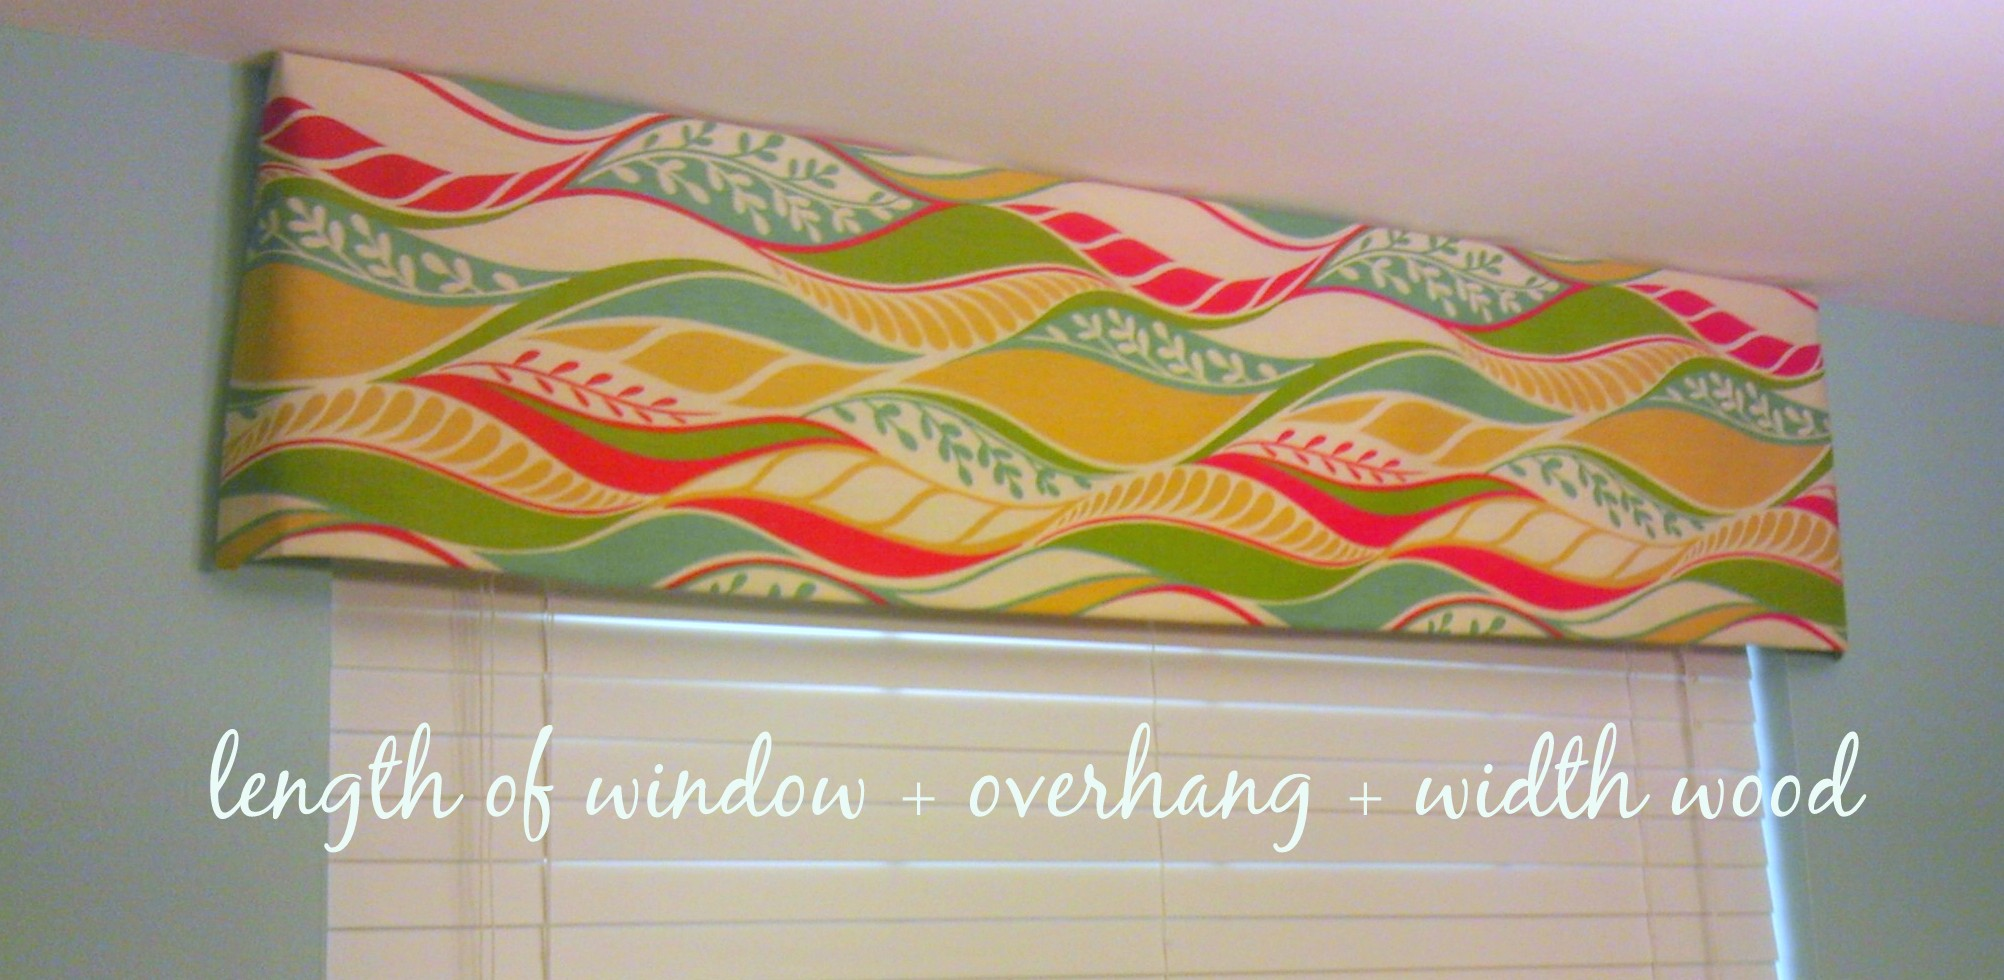 Wood Work Wooden Valance Plans Plans